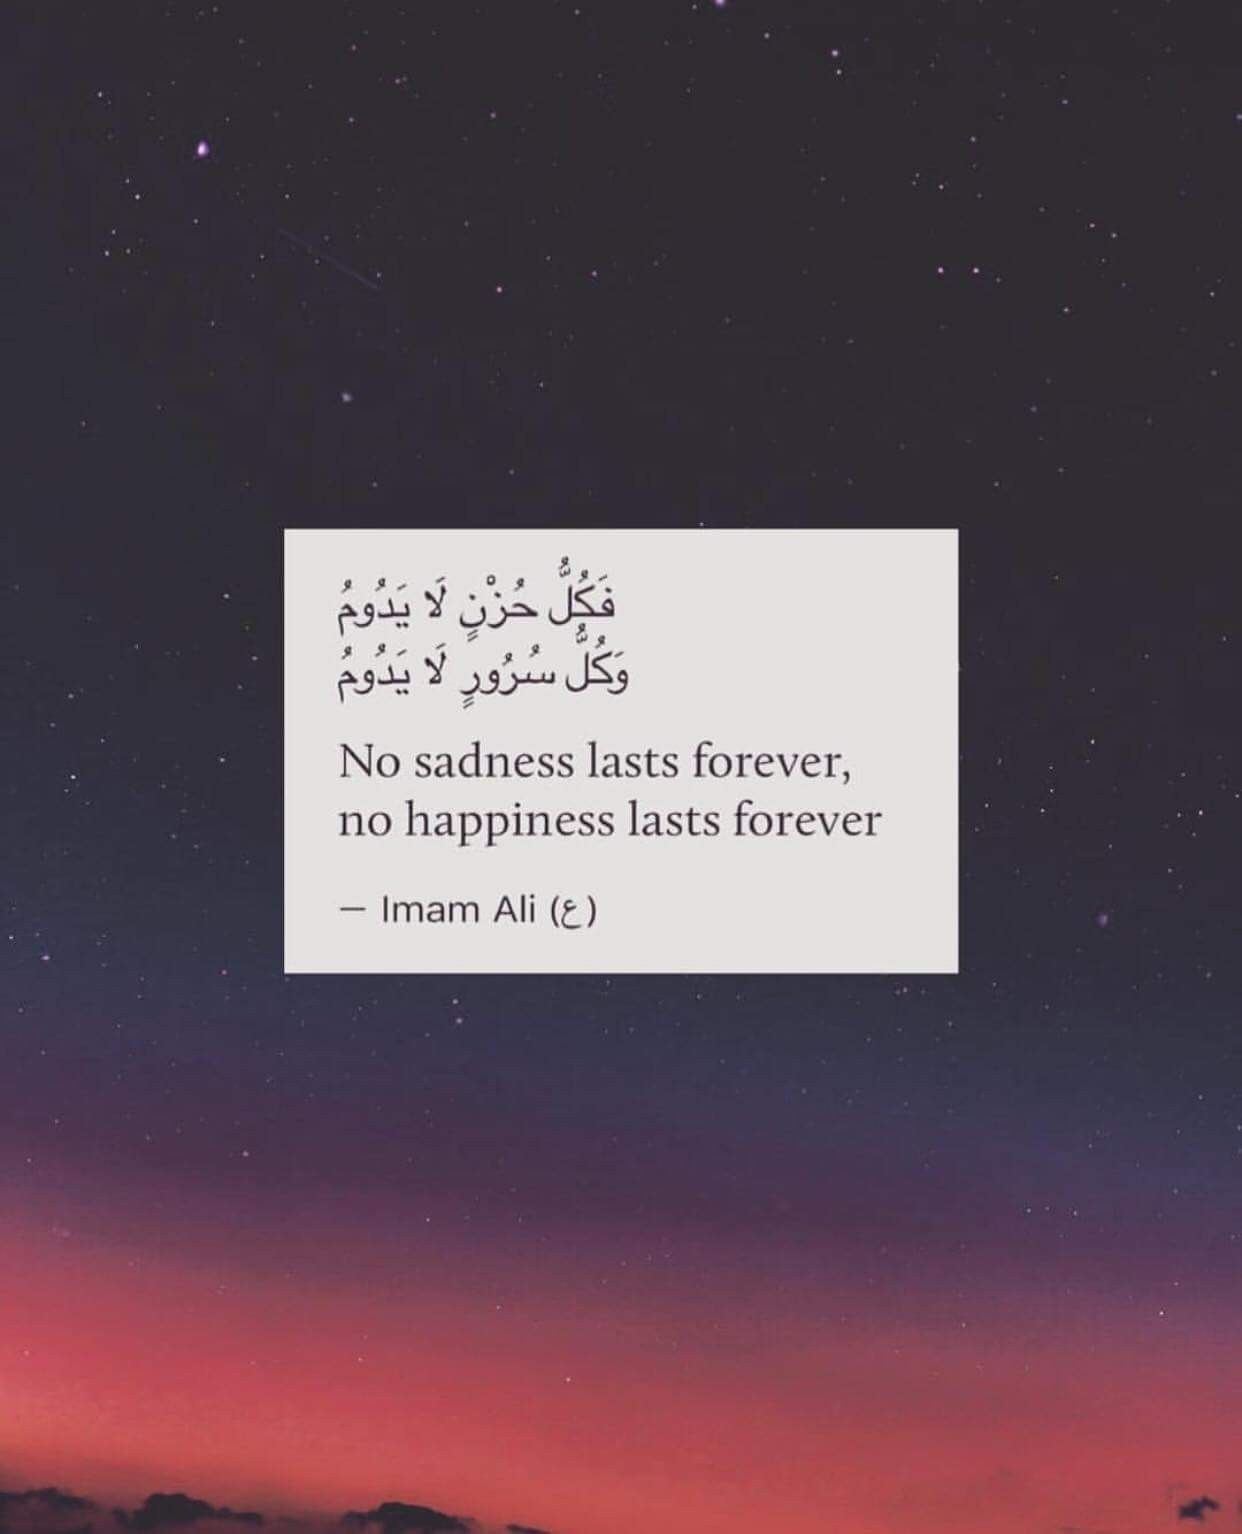 sadness #happiness | The love of my Life, Ali a s  | Hadith